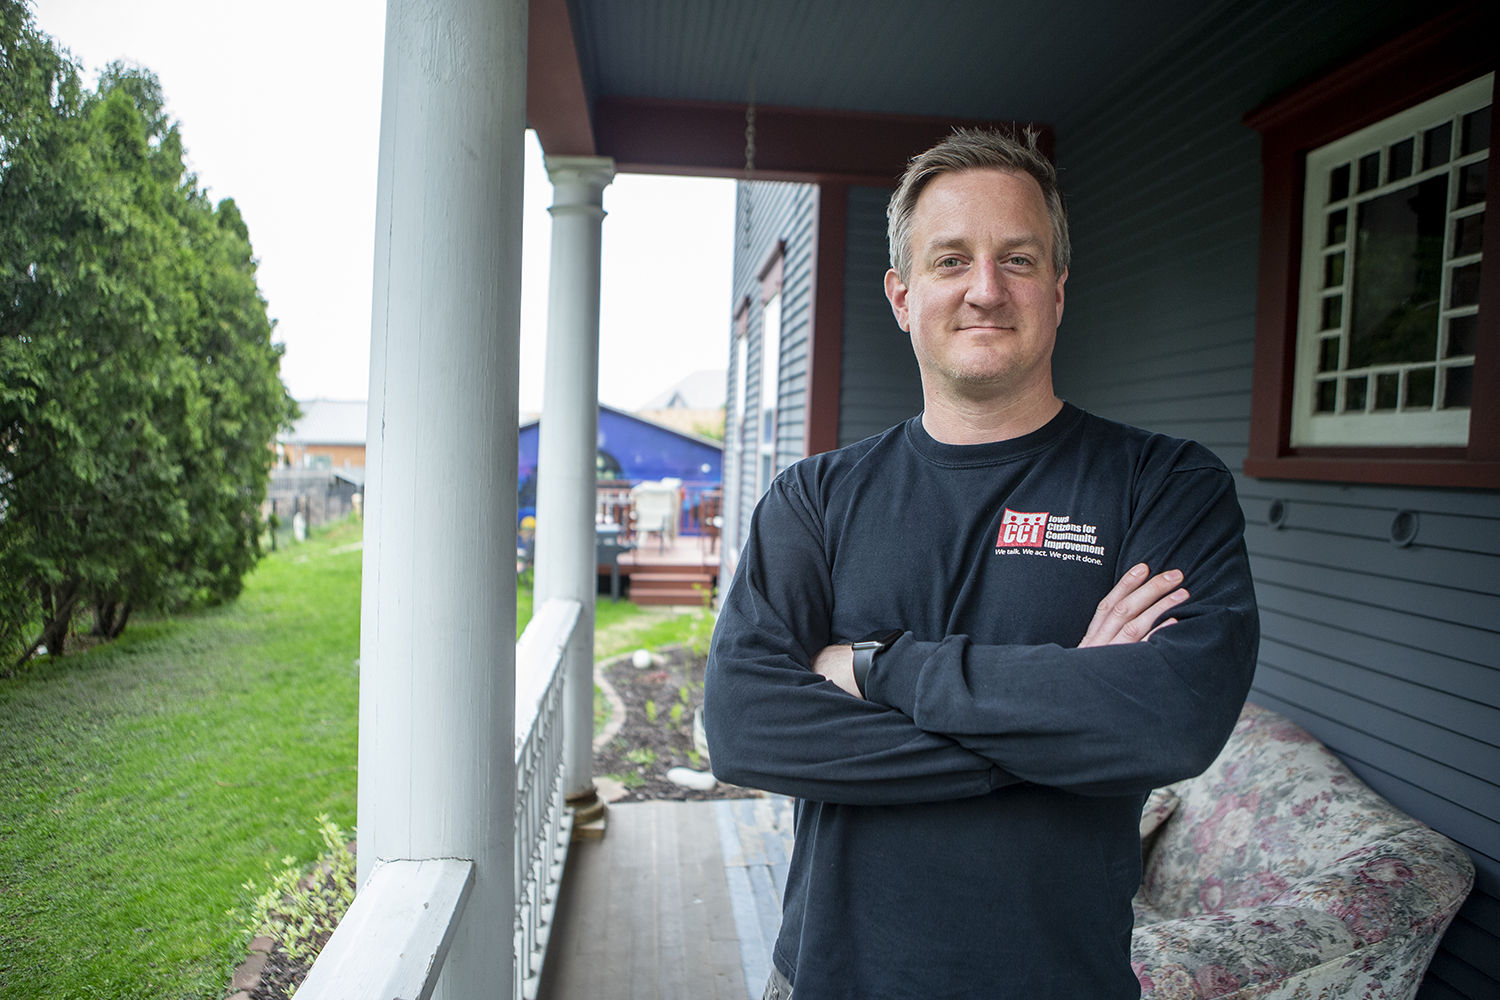 Iowa State Policy Organizing Director for the Iowa Citizens for Community Improvment, Adam Mason, poses for a portrait at Catholic Worker House on Wednesday, May 1, 2019. The ICCI is working with other organizations to advocate for cleaner water across Iowa. (Alyson Kuennen/The Daily Iowan)